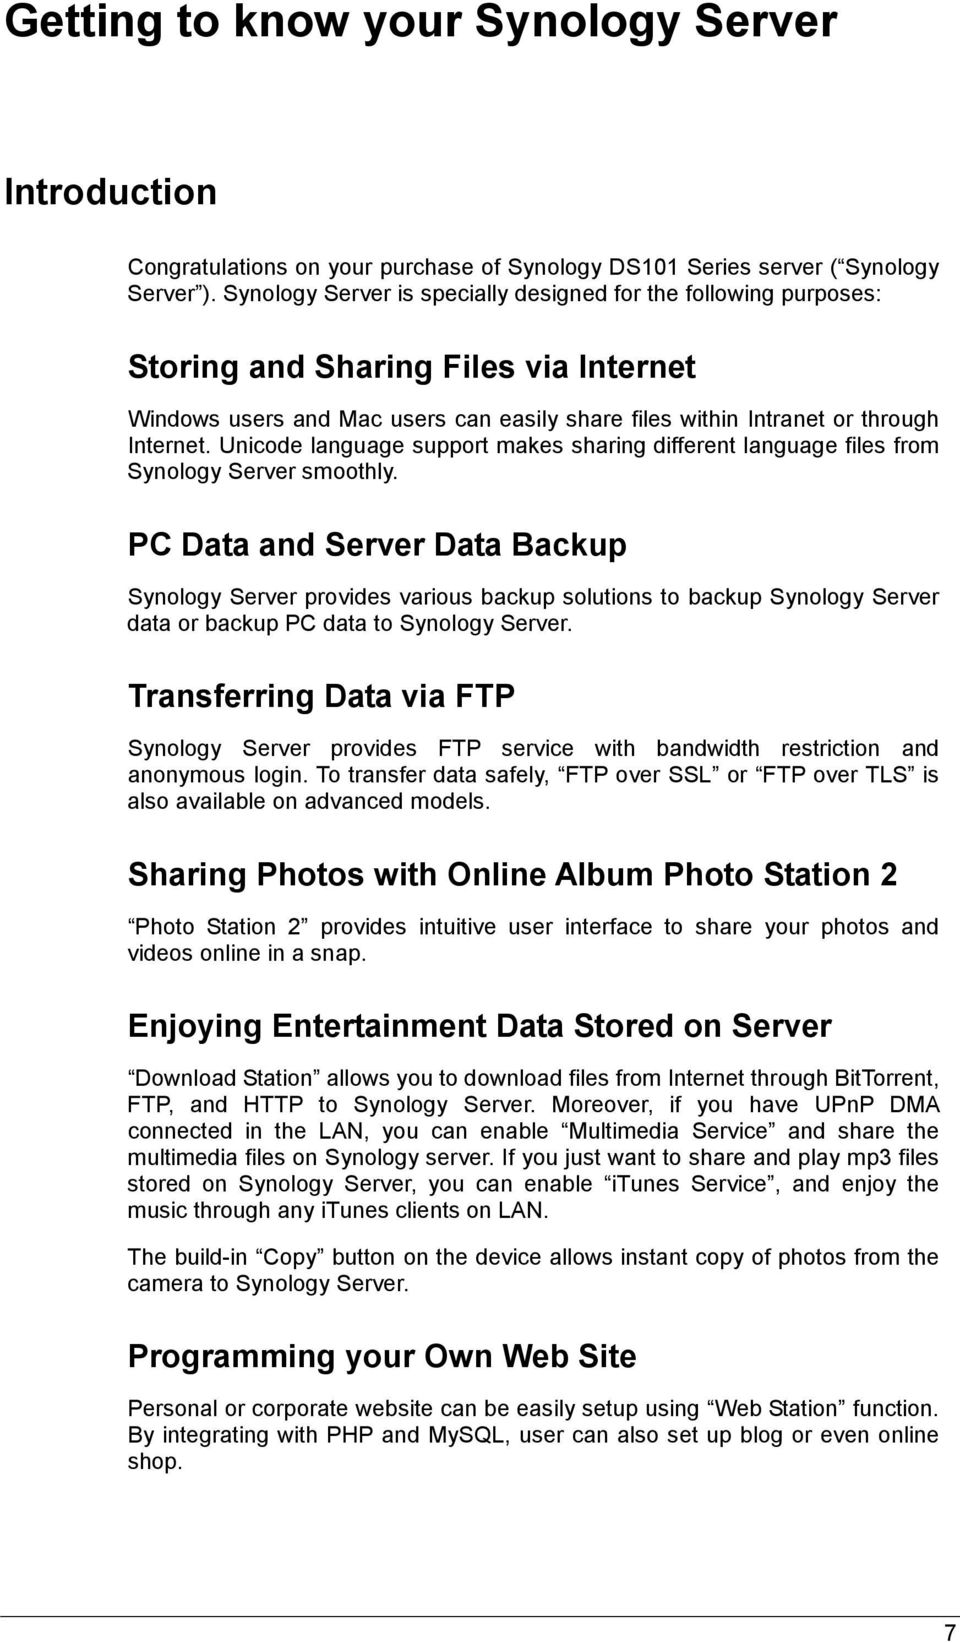 Synology DS101 Series - PDF